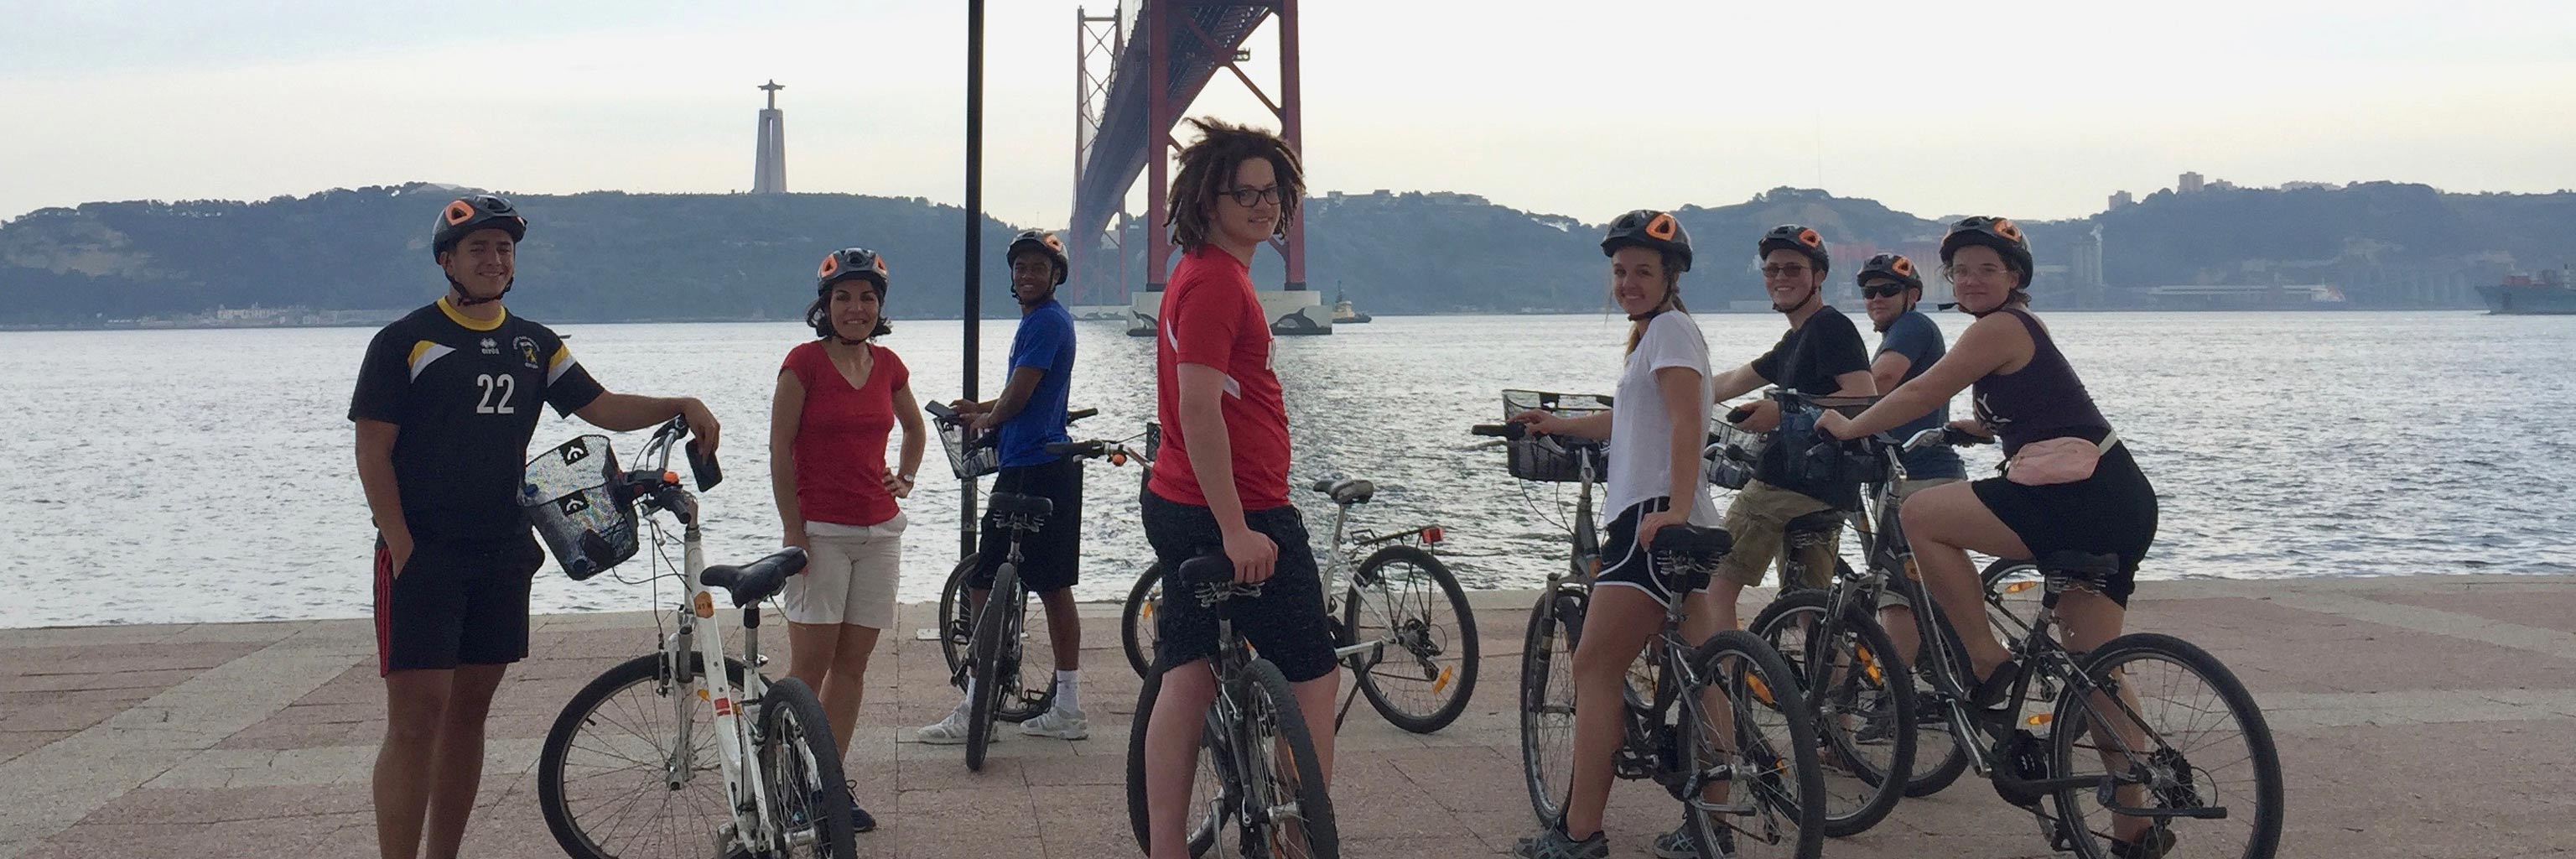 Students pose with their bikes on a waterfront